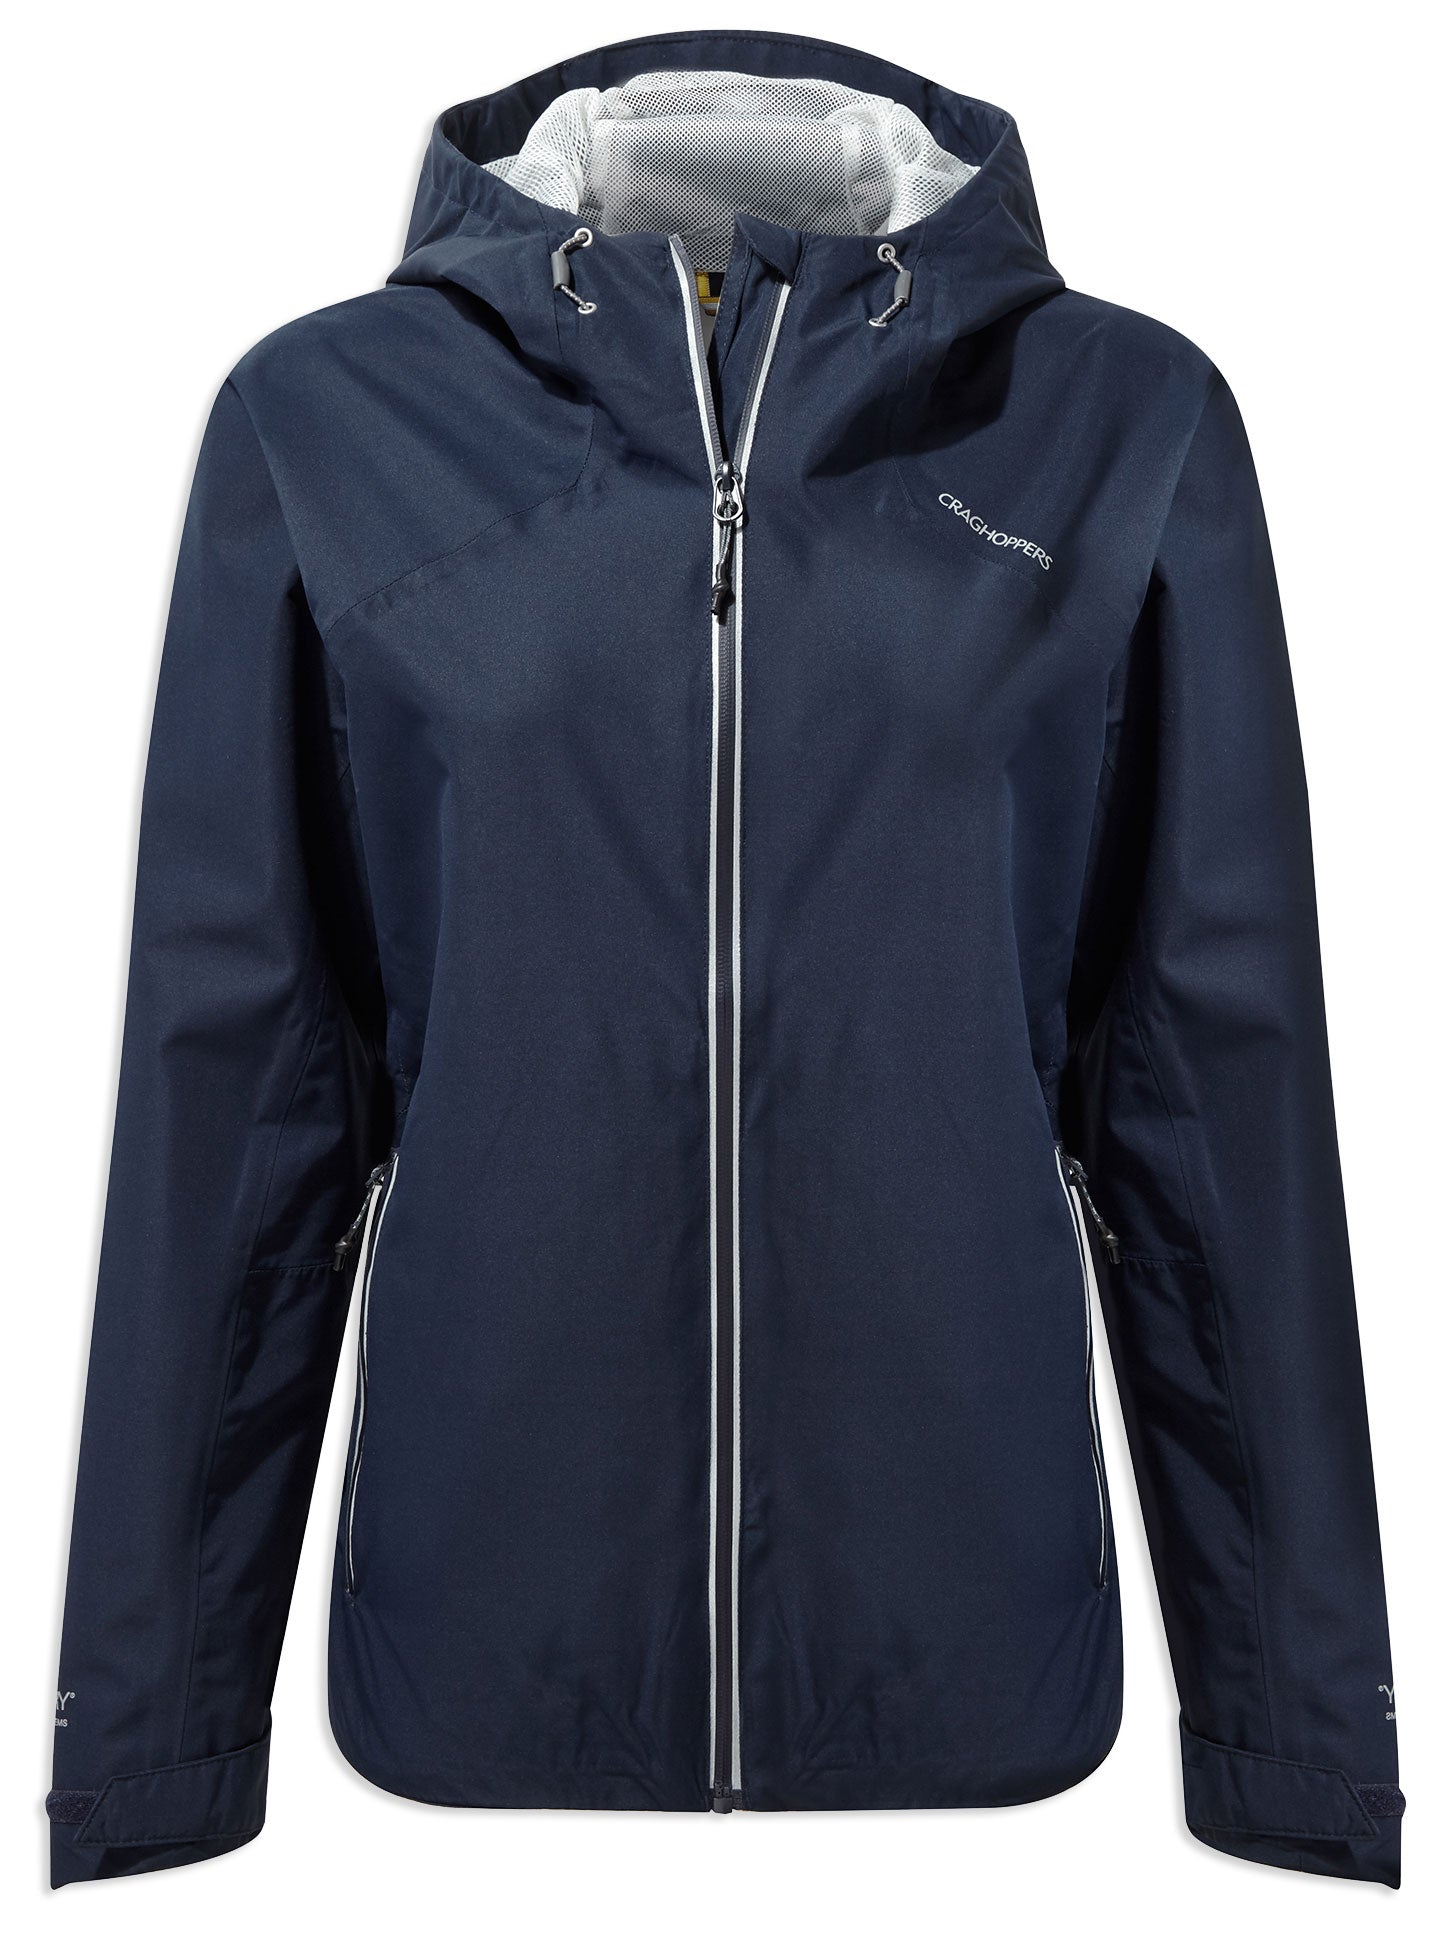 Craghoppers Horizon Ladies Waterproof Jacket